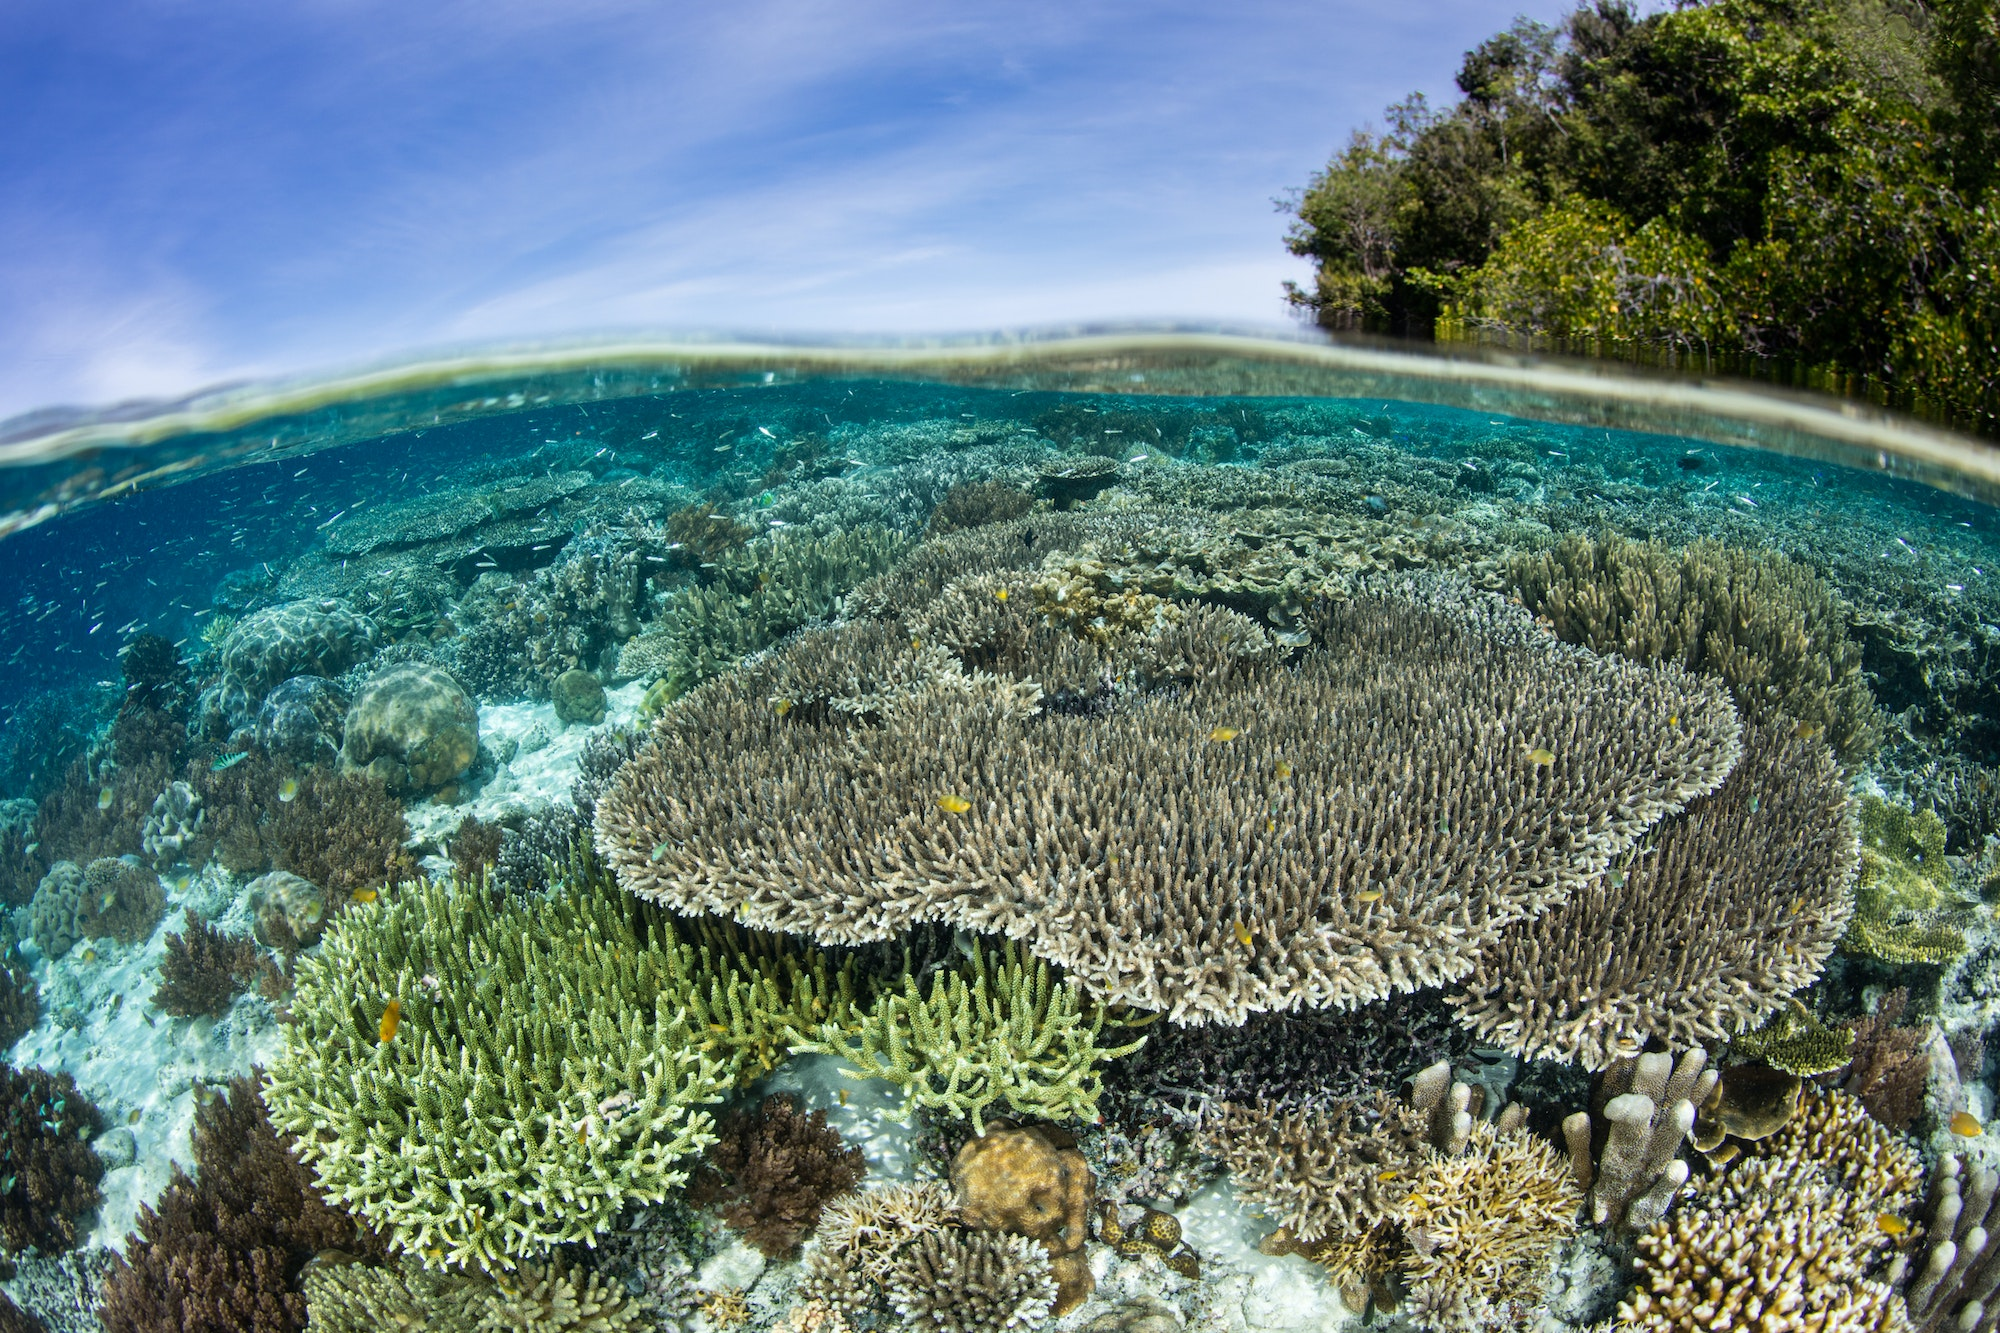 Raja Ampat's coral reef systems are home to more than 1,300 fish species.